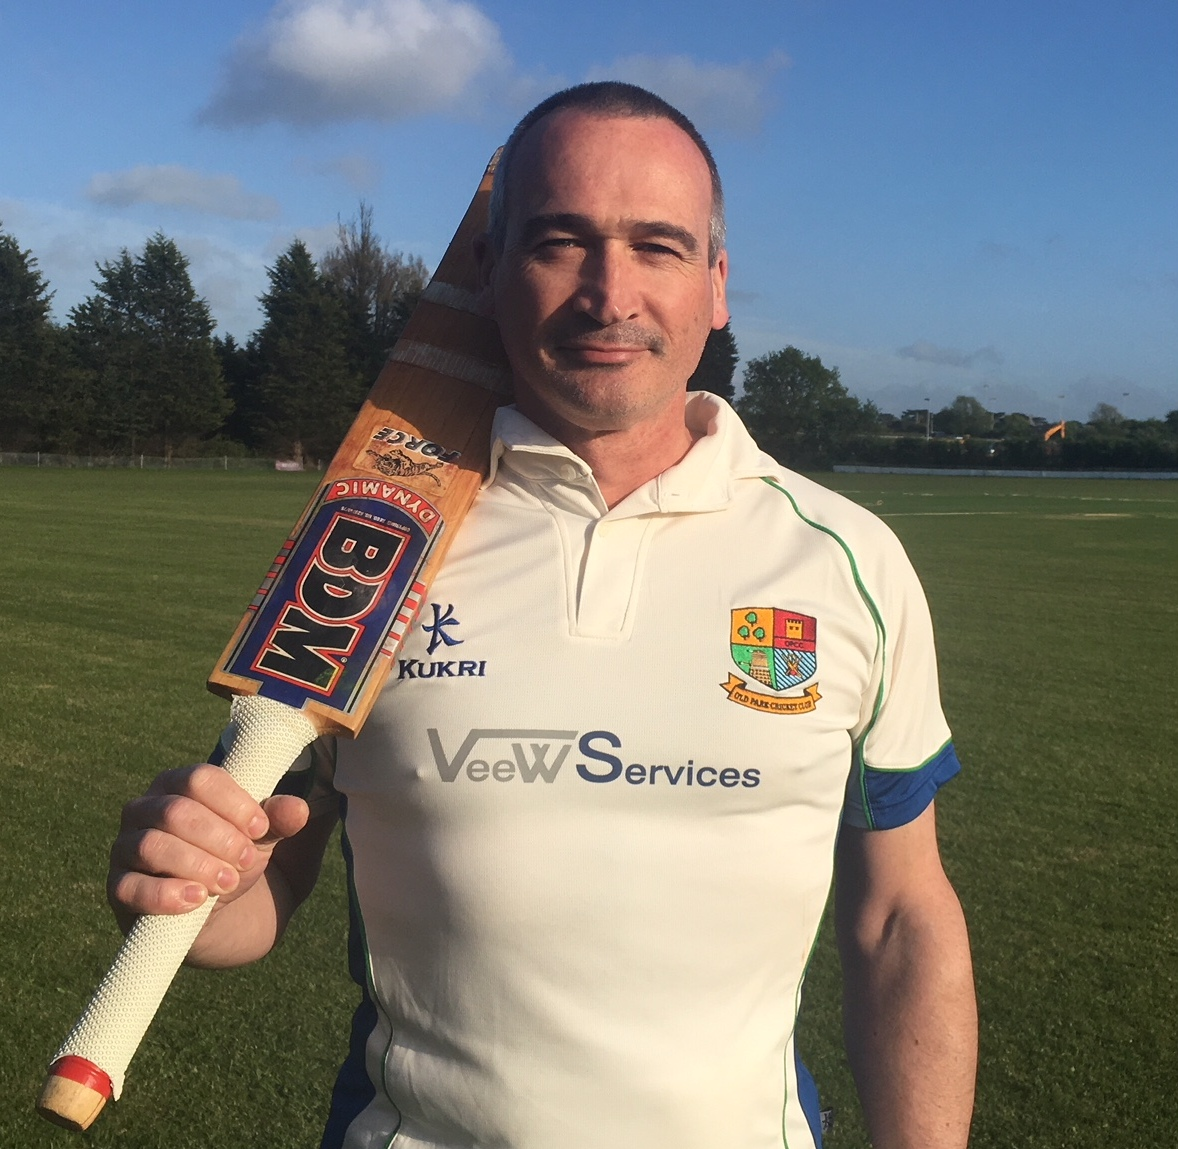 David marks his comeback to cricket with a stirring maiden century!